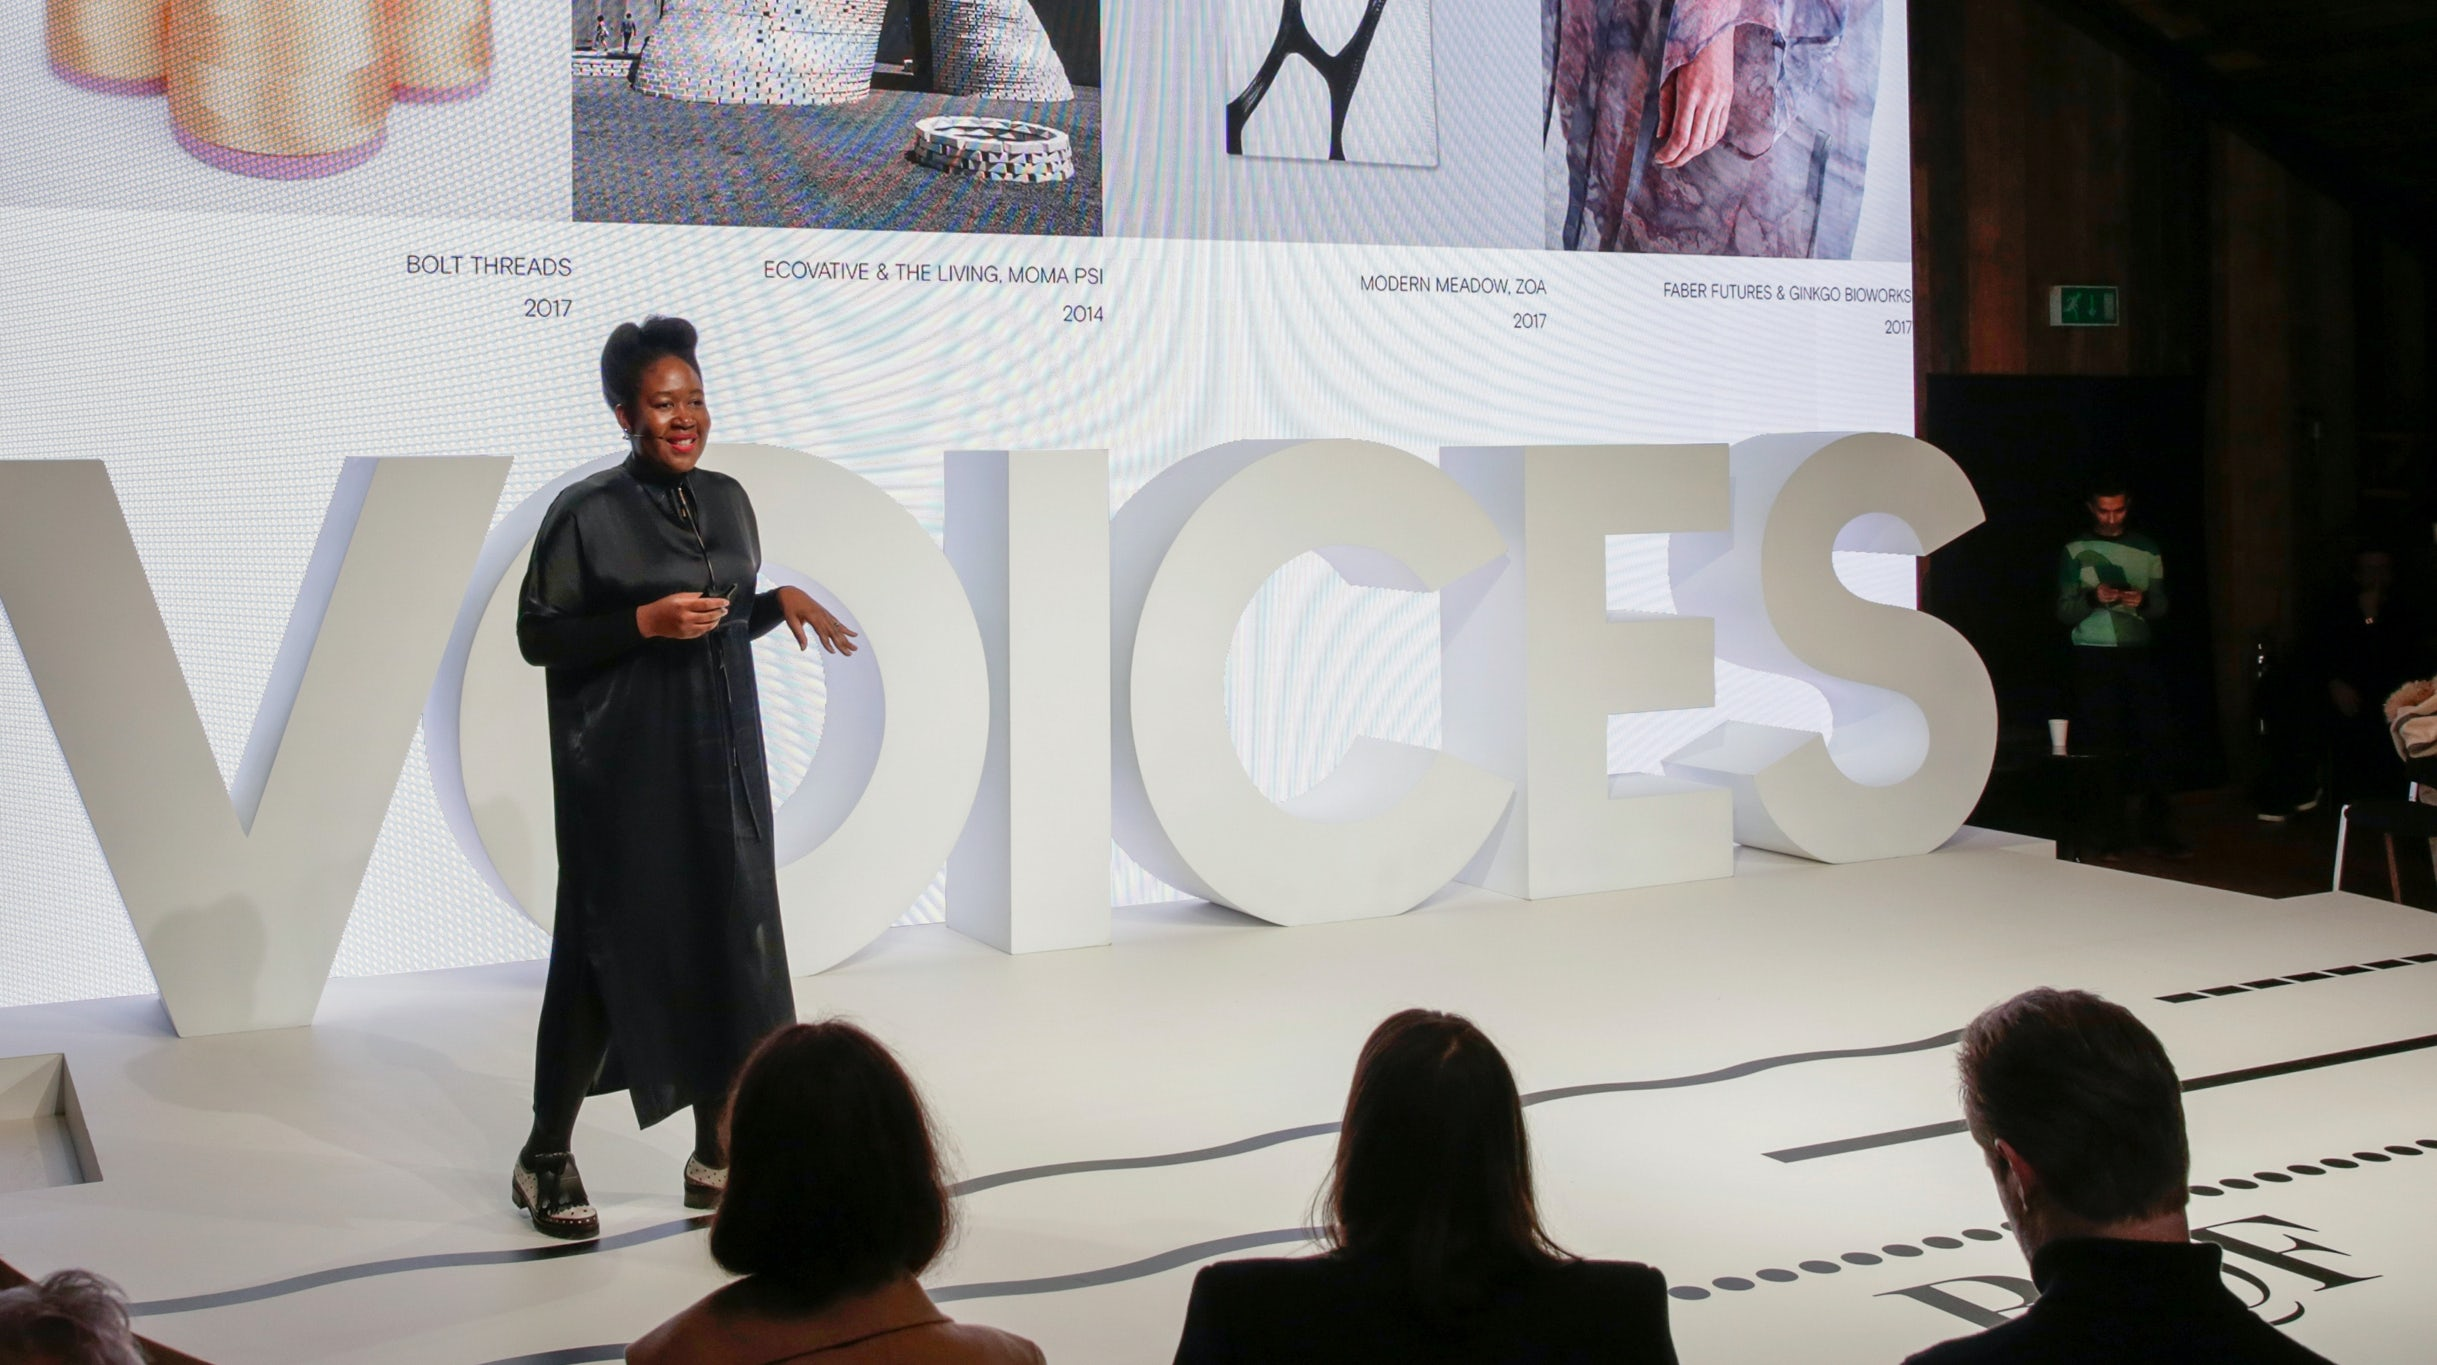 Natsai Audrey Chieza | Source: Getty Images for The Business of Fashion